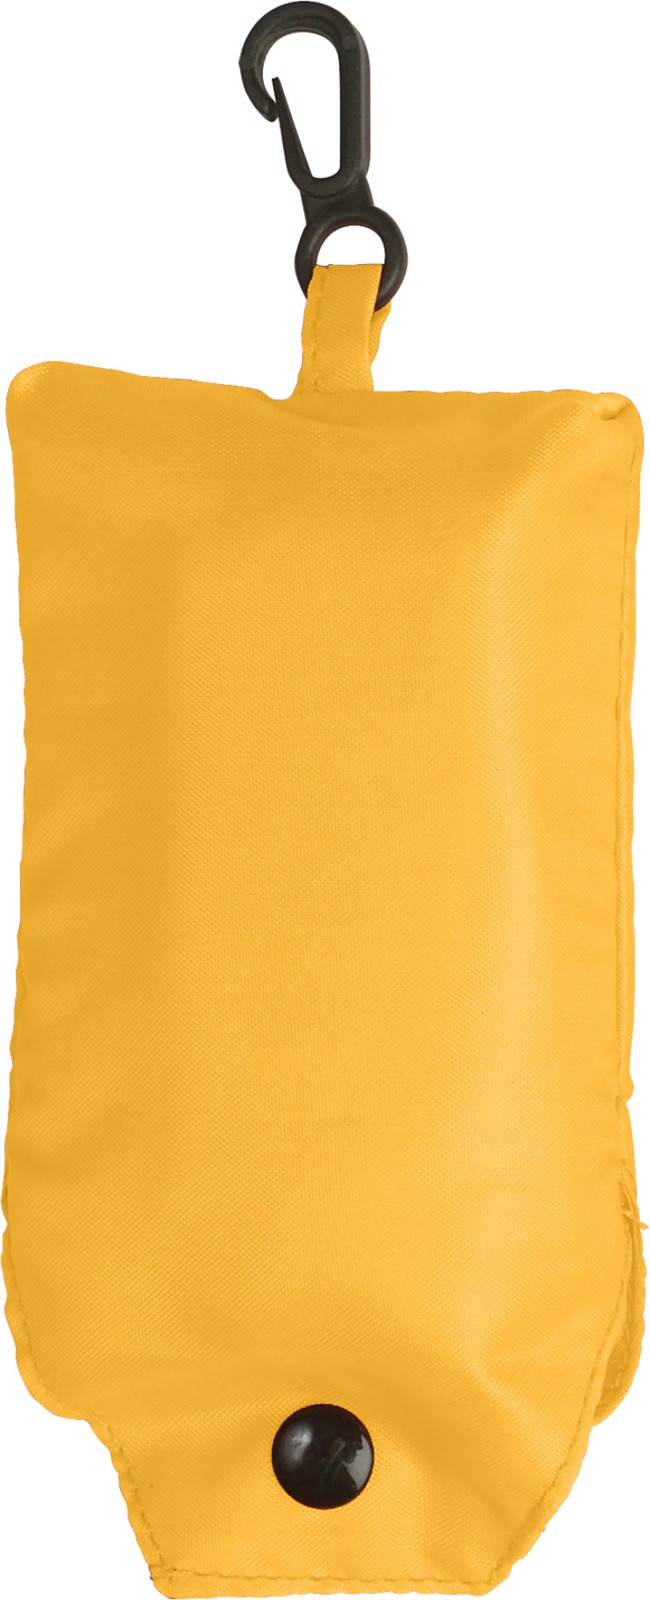 Polyester (190T) shopping bag - Yellow